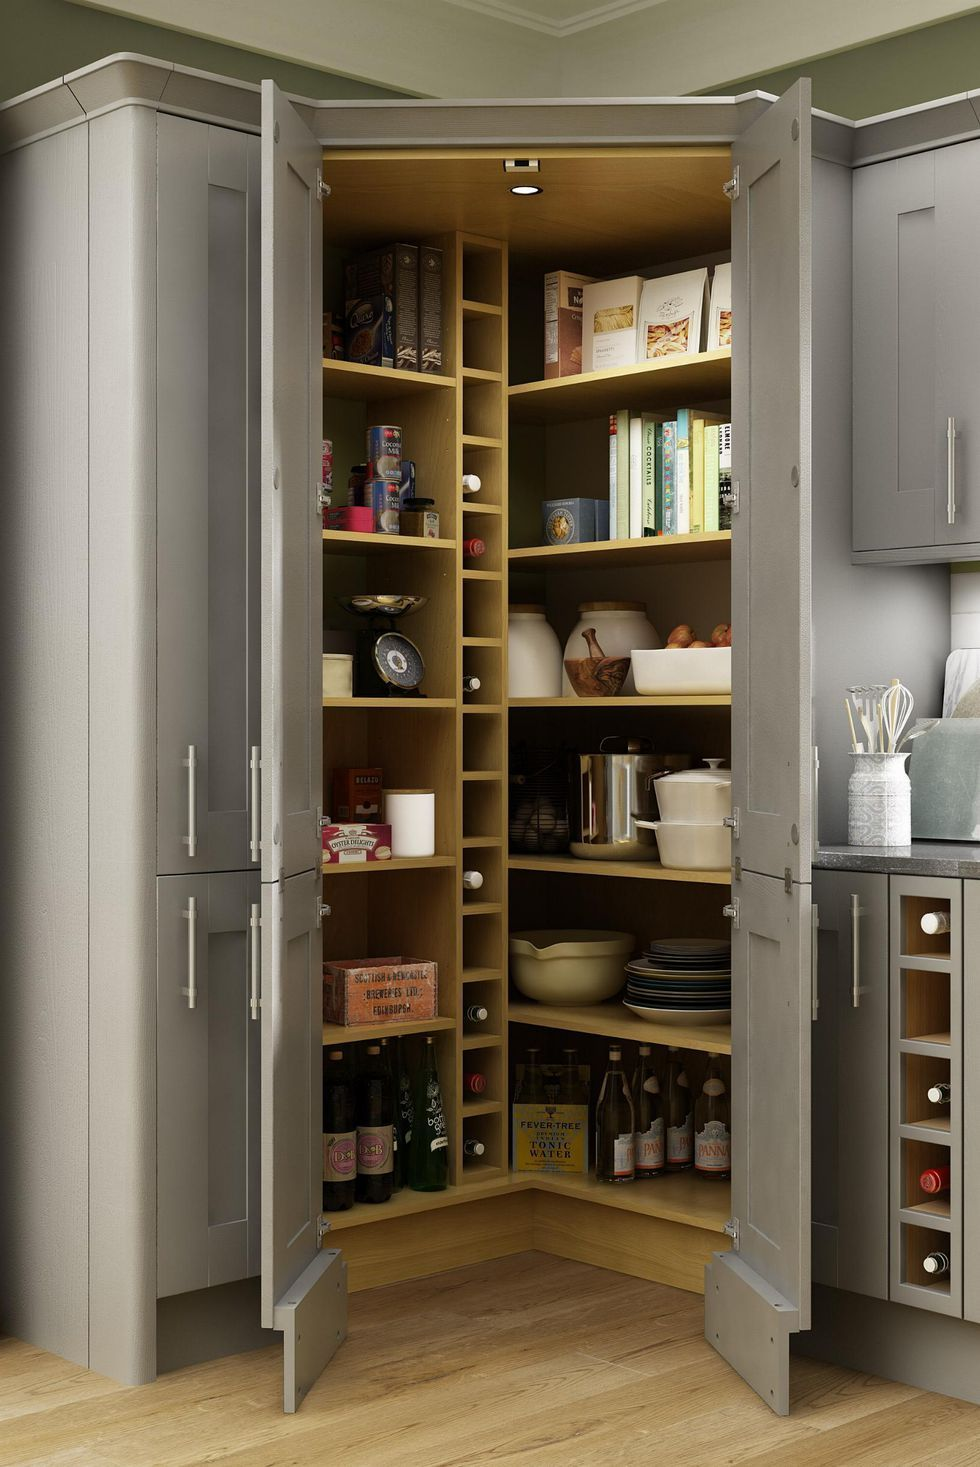 12 stylish and practical pantry ideas for your kit